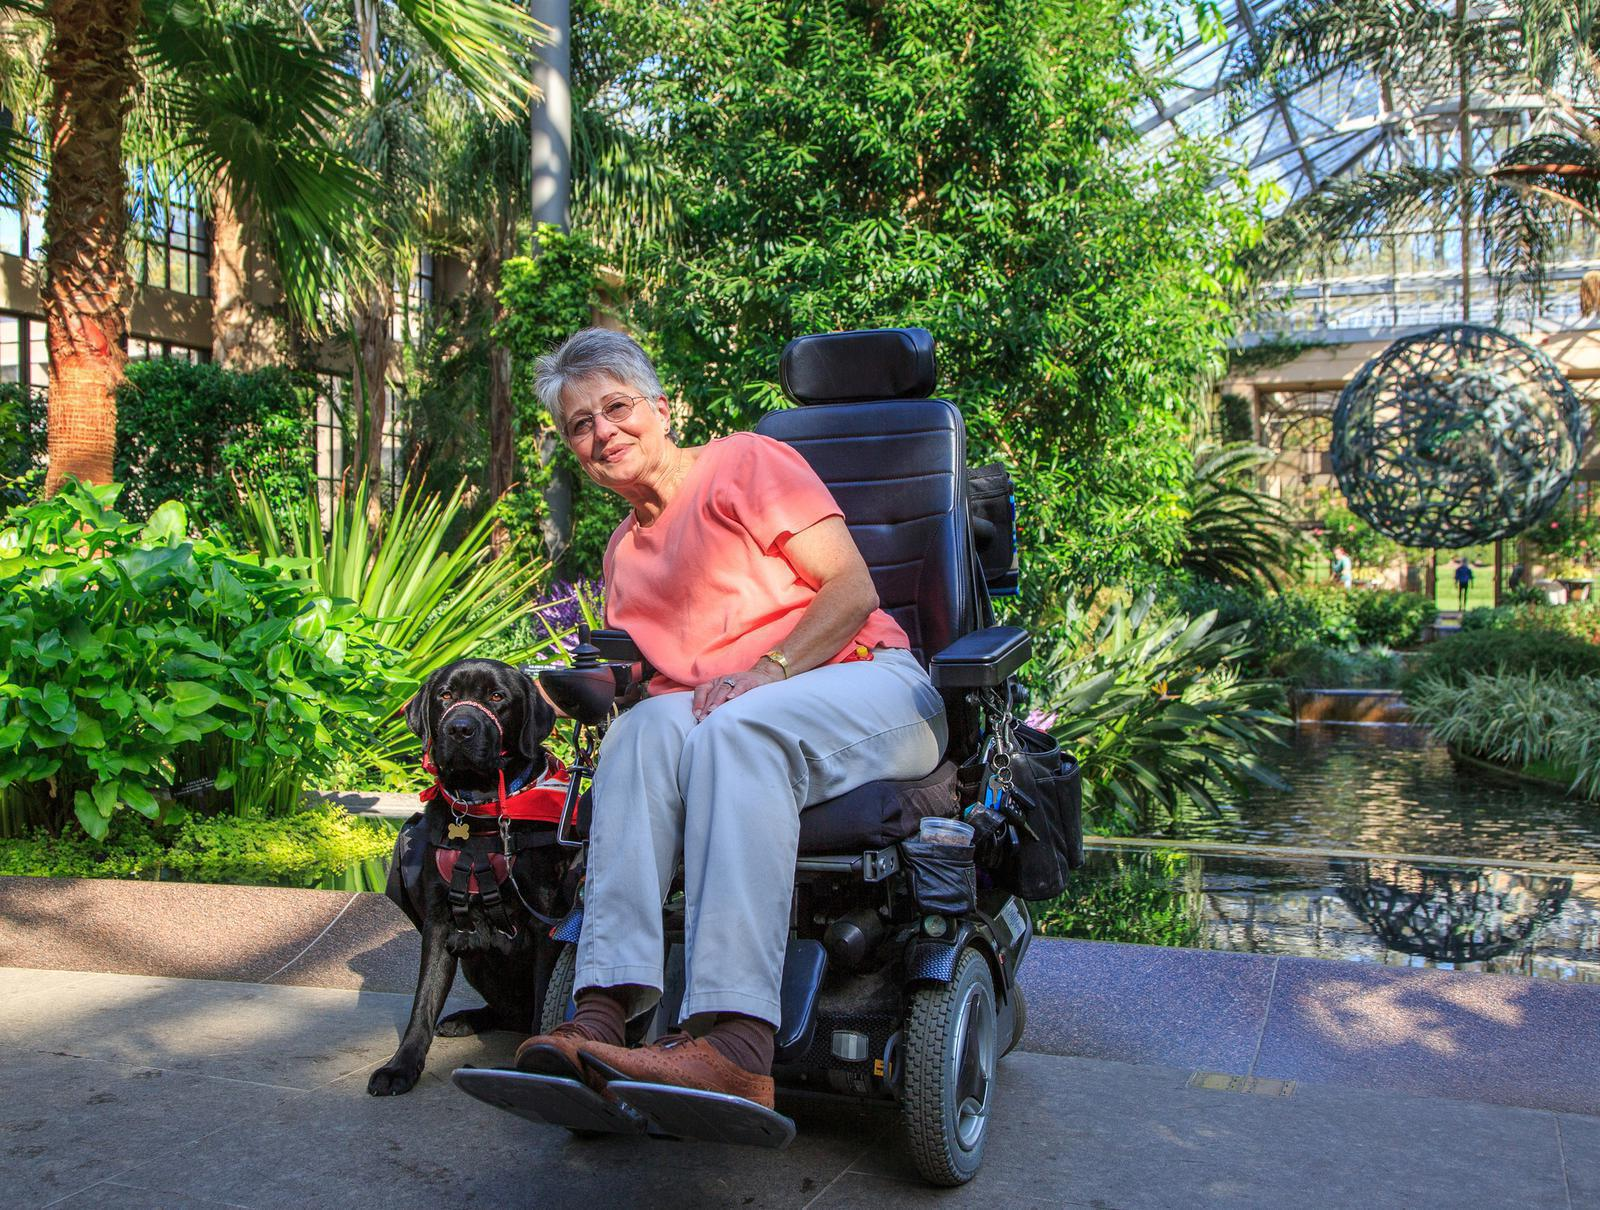 Woman posing with her service dog in her power wheelchair